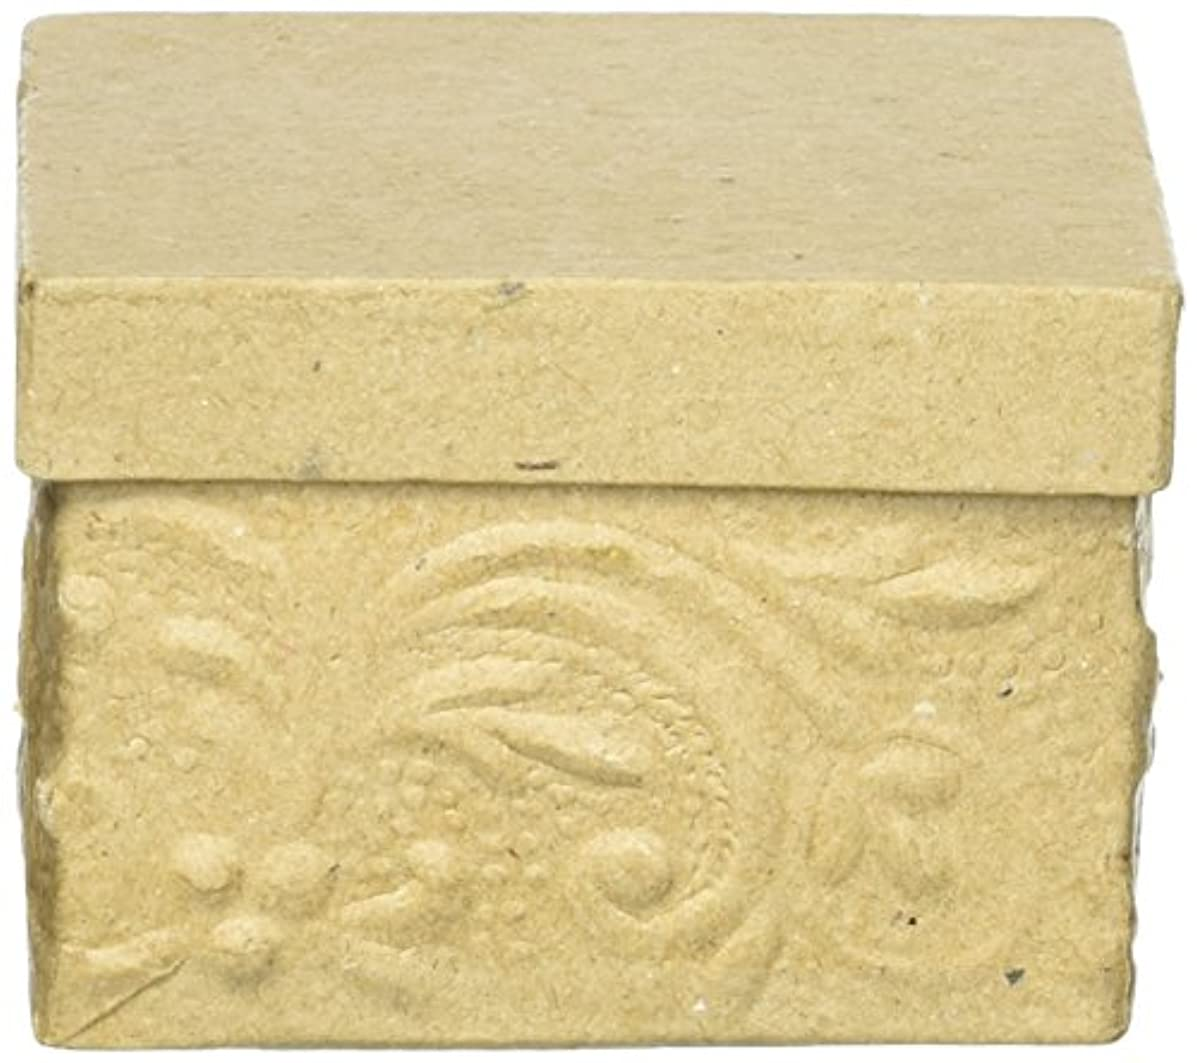 Darice 3 inch, Square Embossed Paper Mache Box, 3